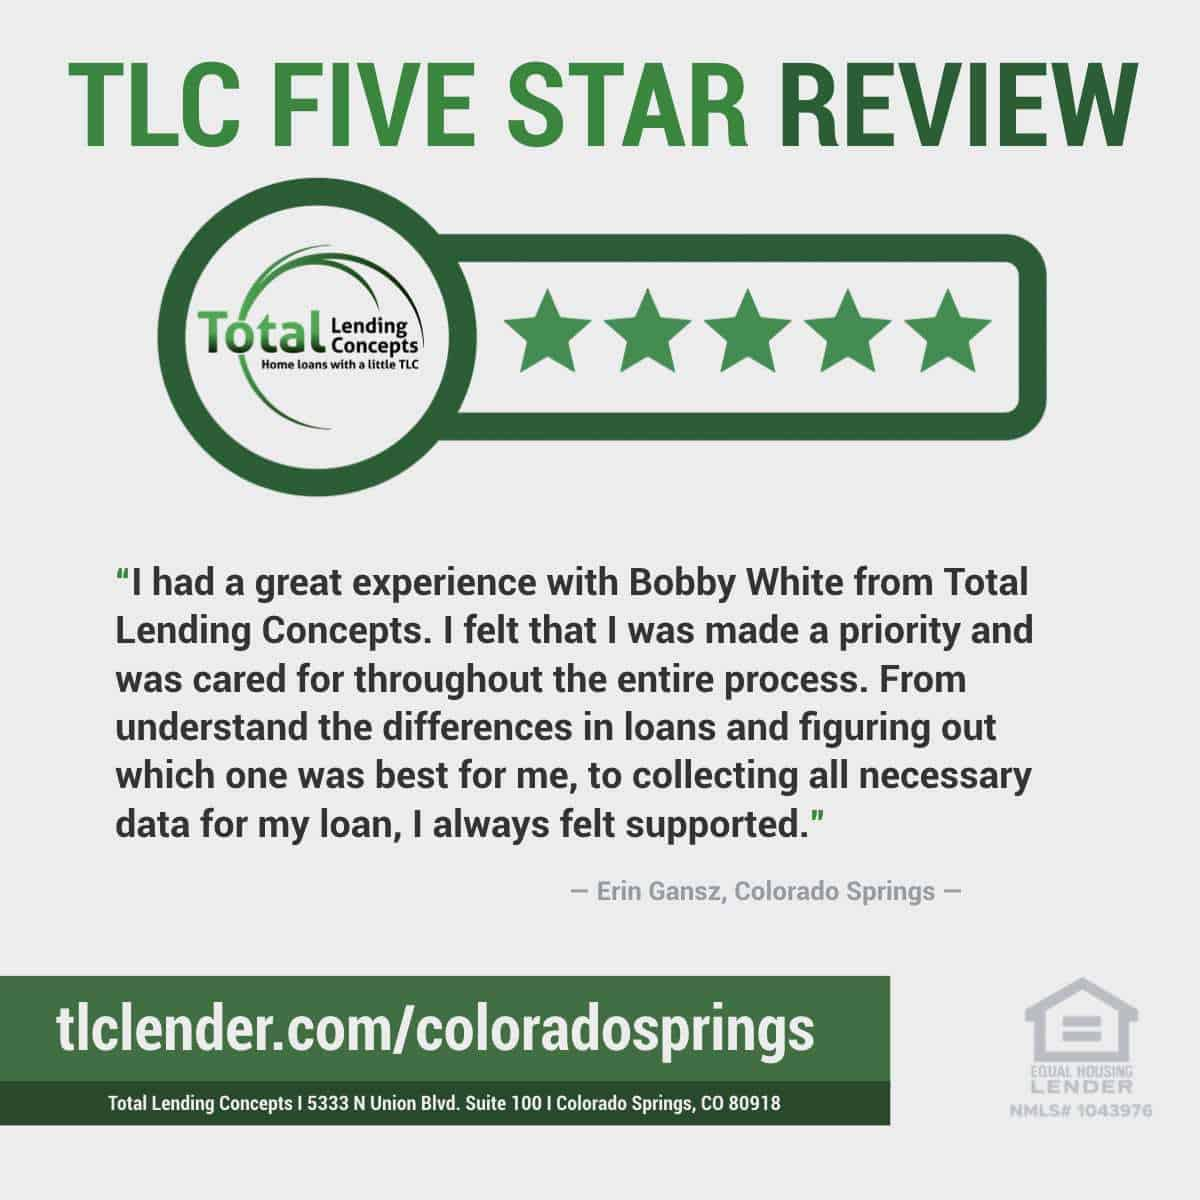 Total-Lending-Concepts-Five-Star-Review-Erin-Gansz-in-Colorado-Springs-Colorado-for-Bobby-White-Home-Mortgage